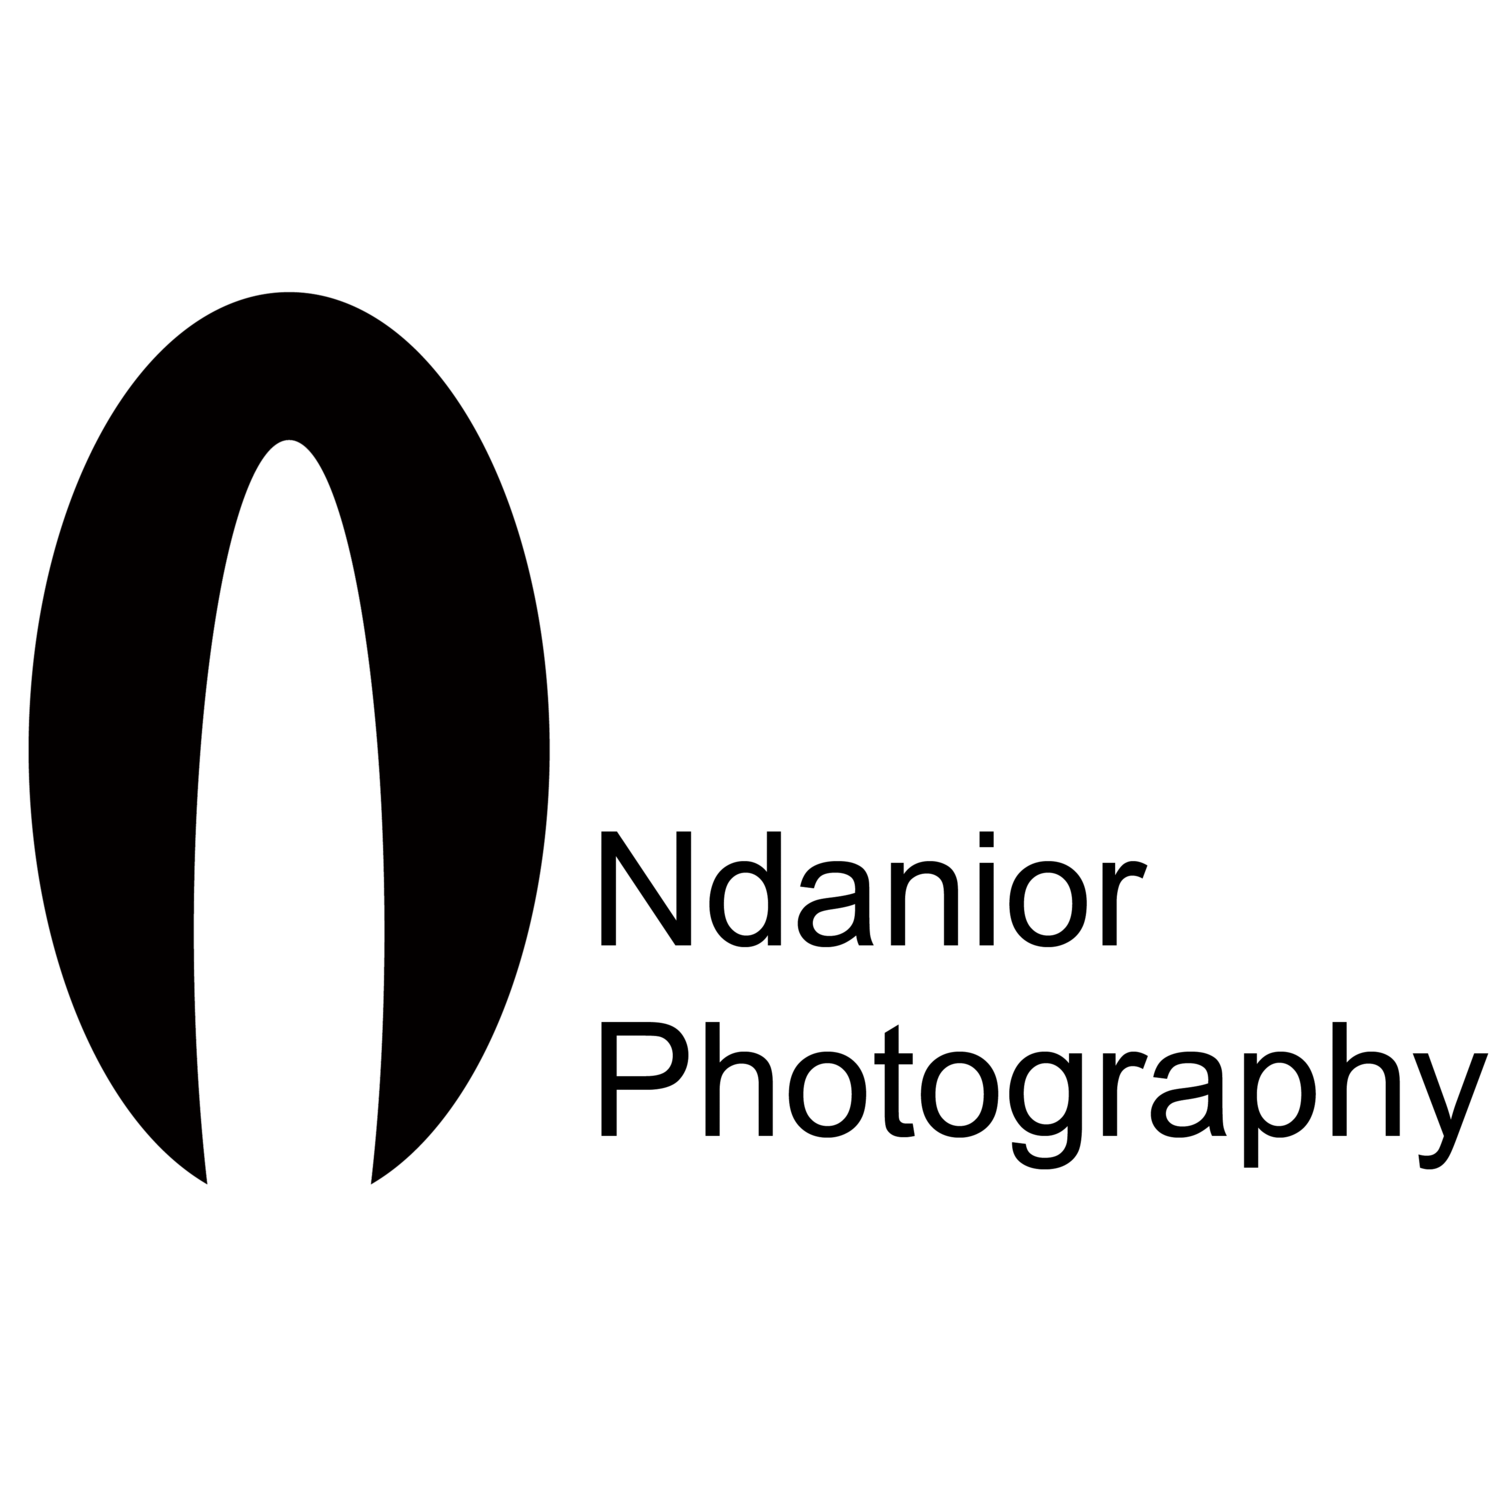 ndanior photography